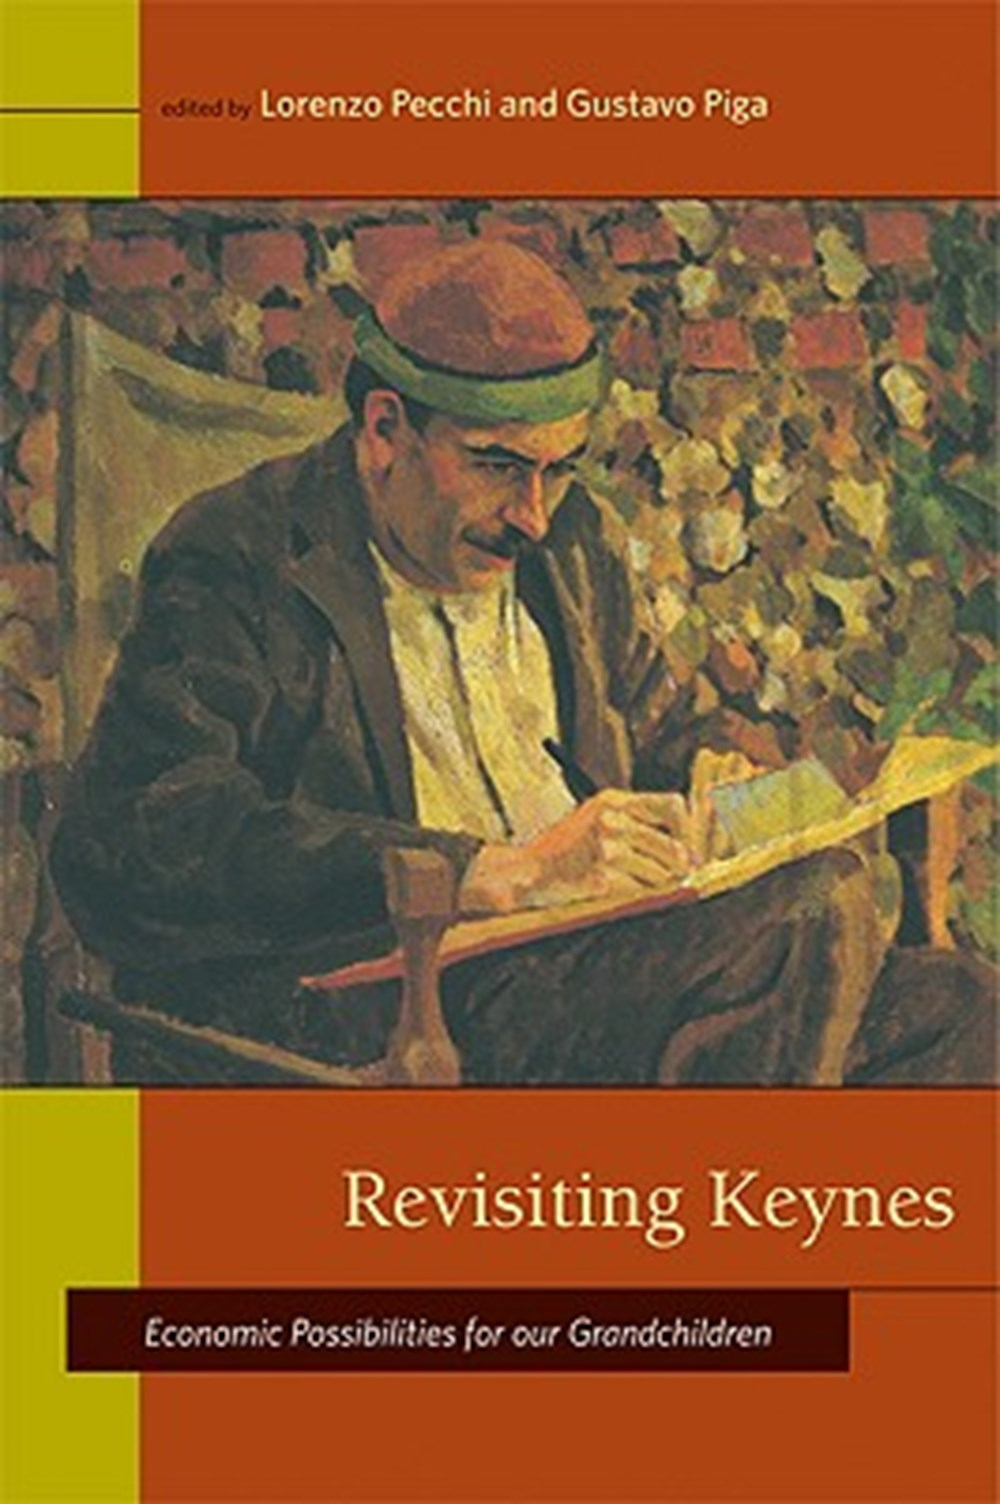 Revisiting Keynes Economic Possibilities for Our Grandchildren